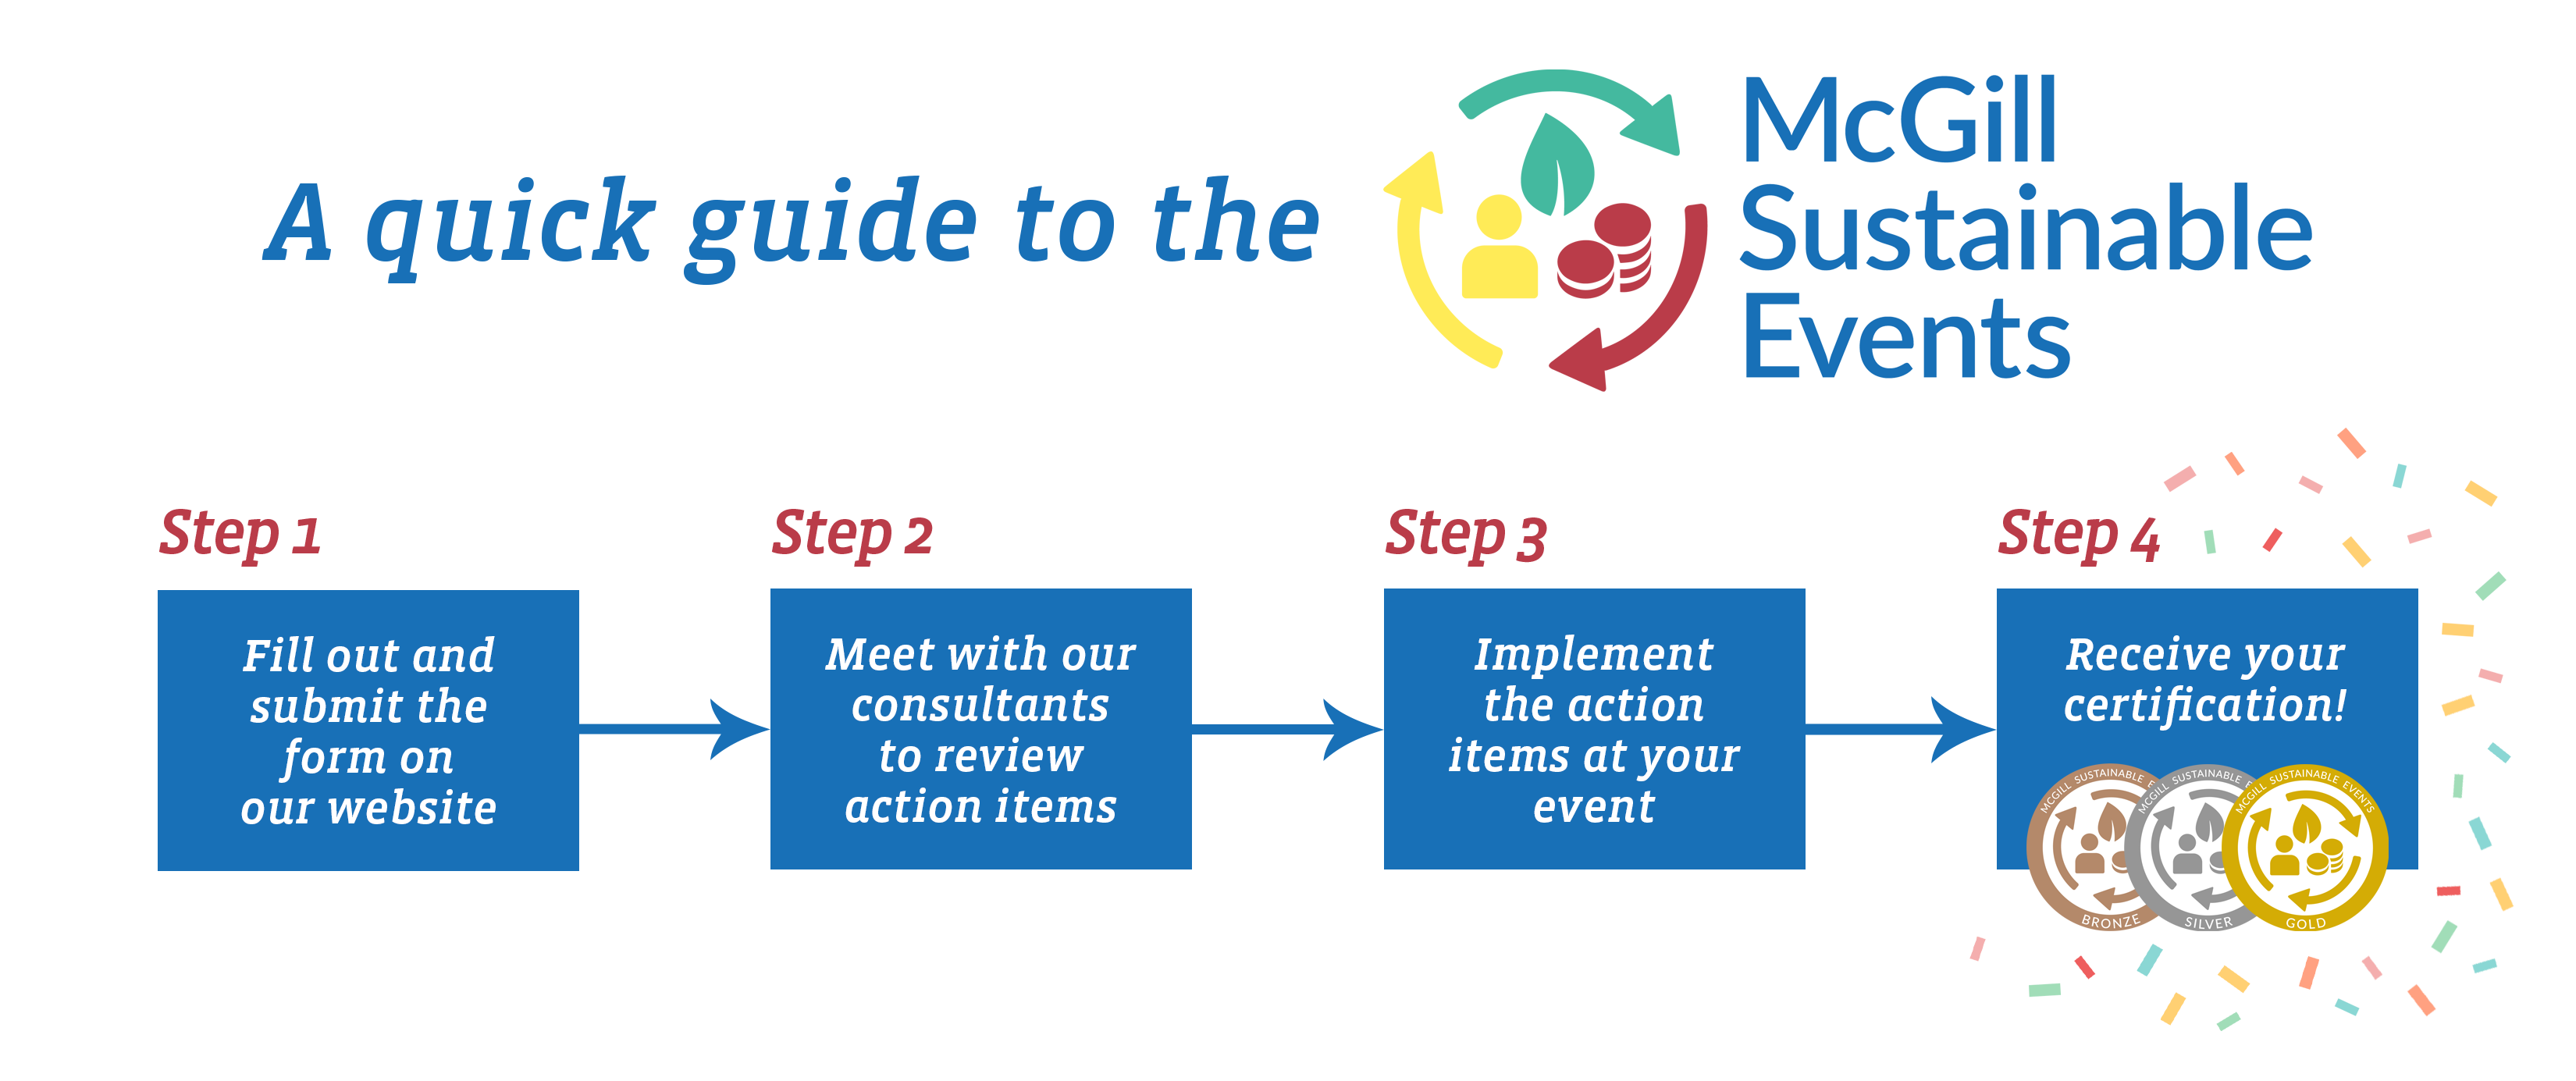 Sustainable events certification timeline